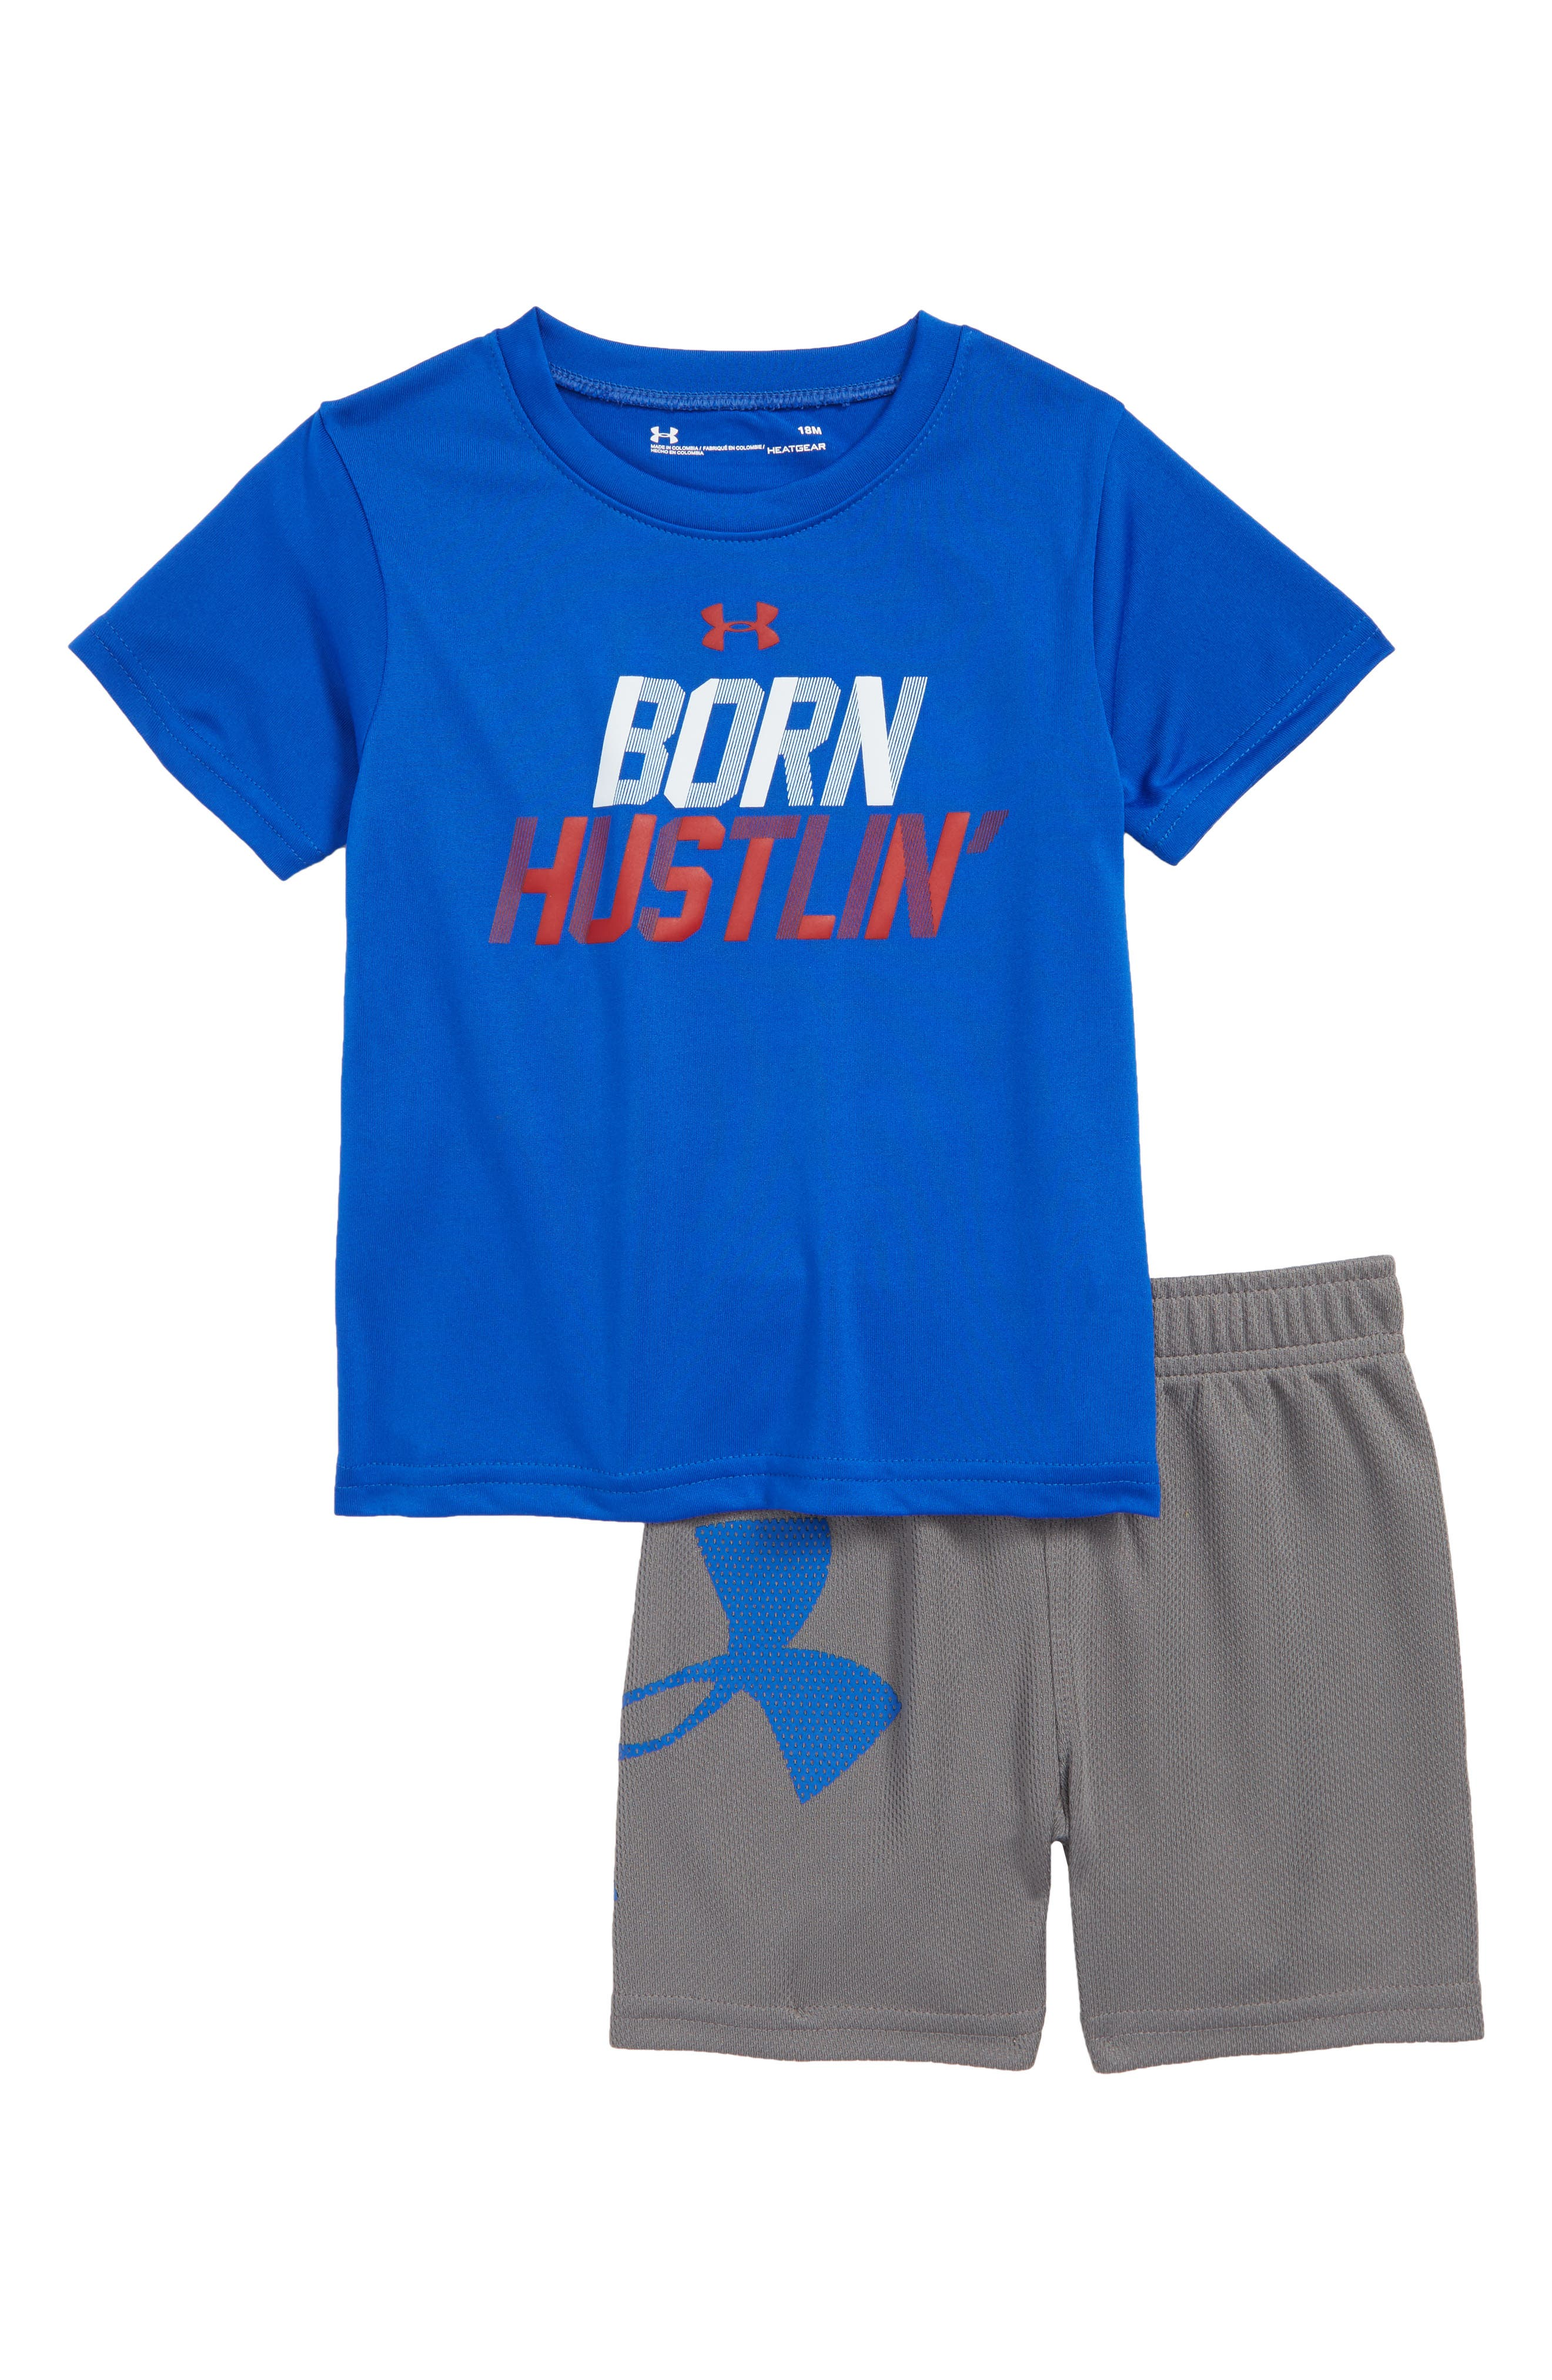 Born Hustlin T-Shirt & Shorts,                             Main thumbnail 1, color,                             420